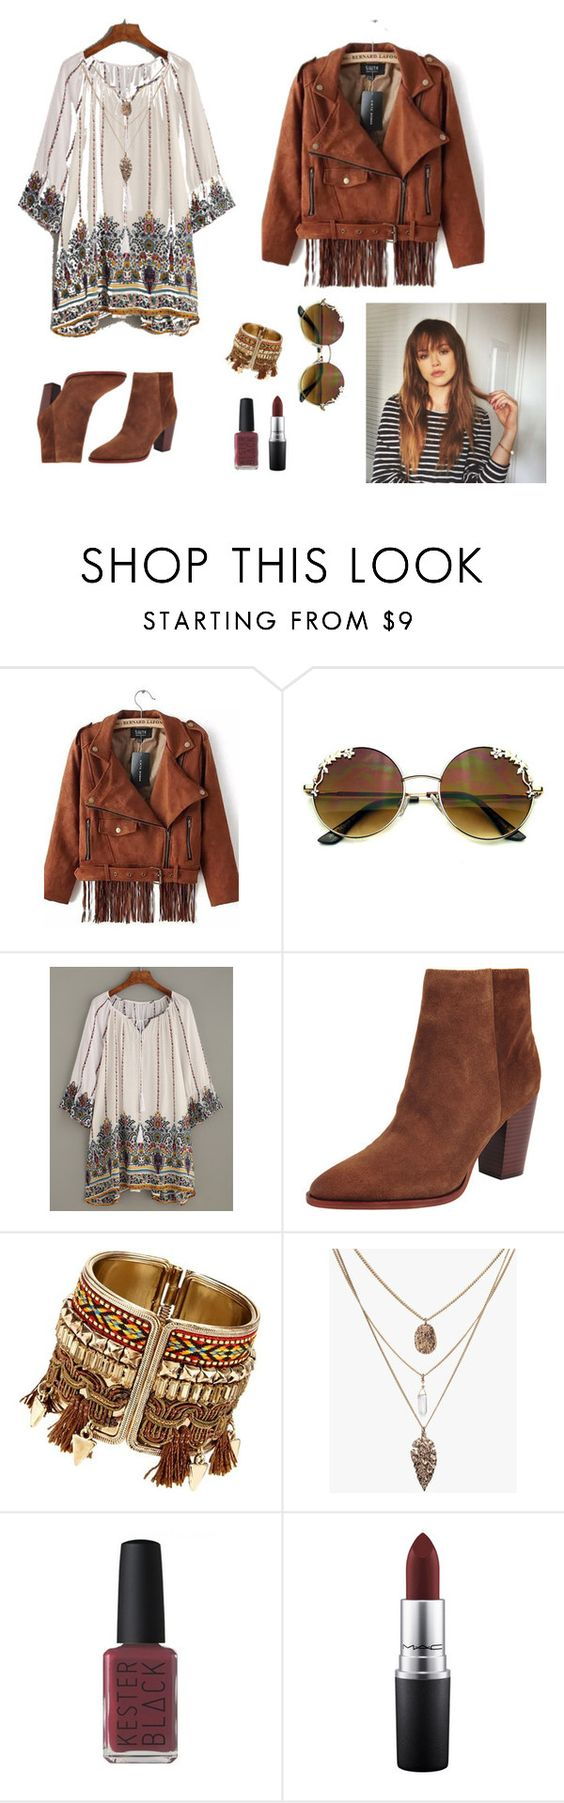 """Без названия #6"" by darkann ❤ liked on Polyvore featuring WithChic, Sam Edelman, Kester Black and MAC Cosmetics"